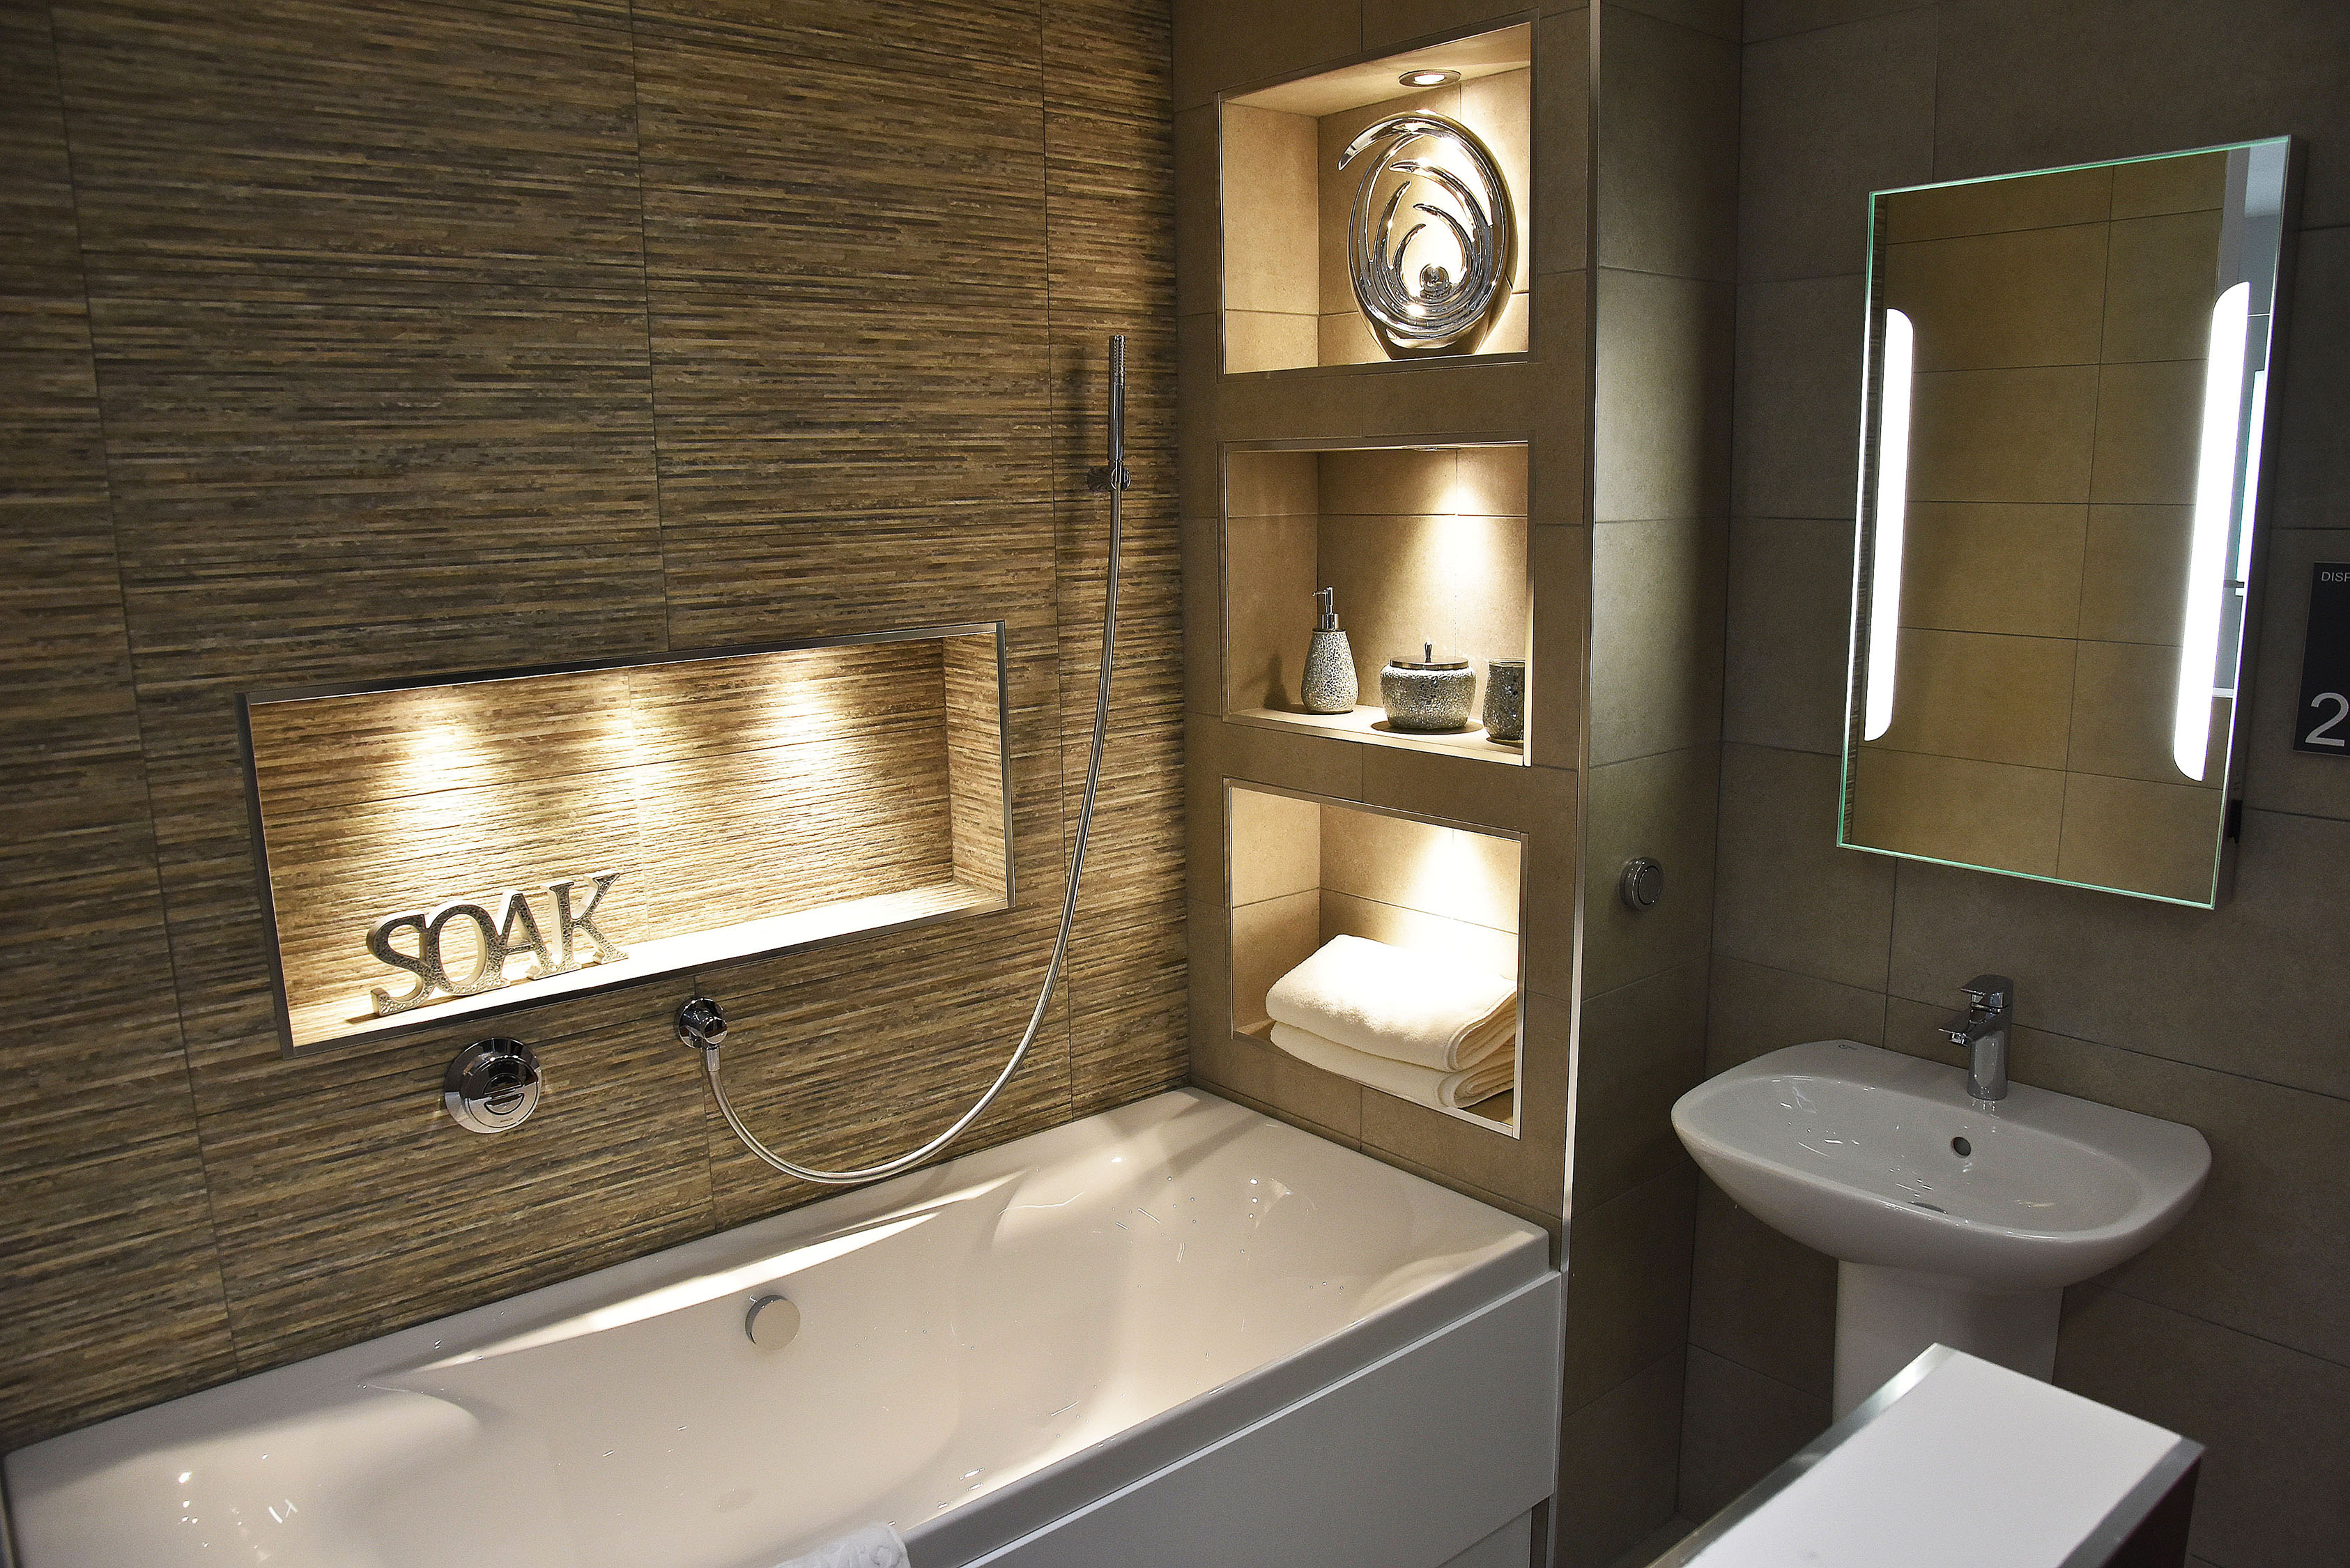 Scroll Through The Slides And Click To View More Of What Our Fantastic  CHARD Bathroom Showroom Has To Offer.